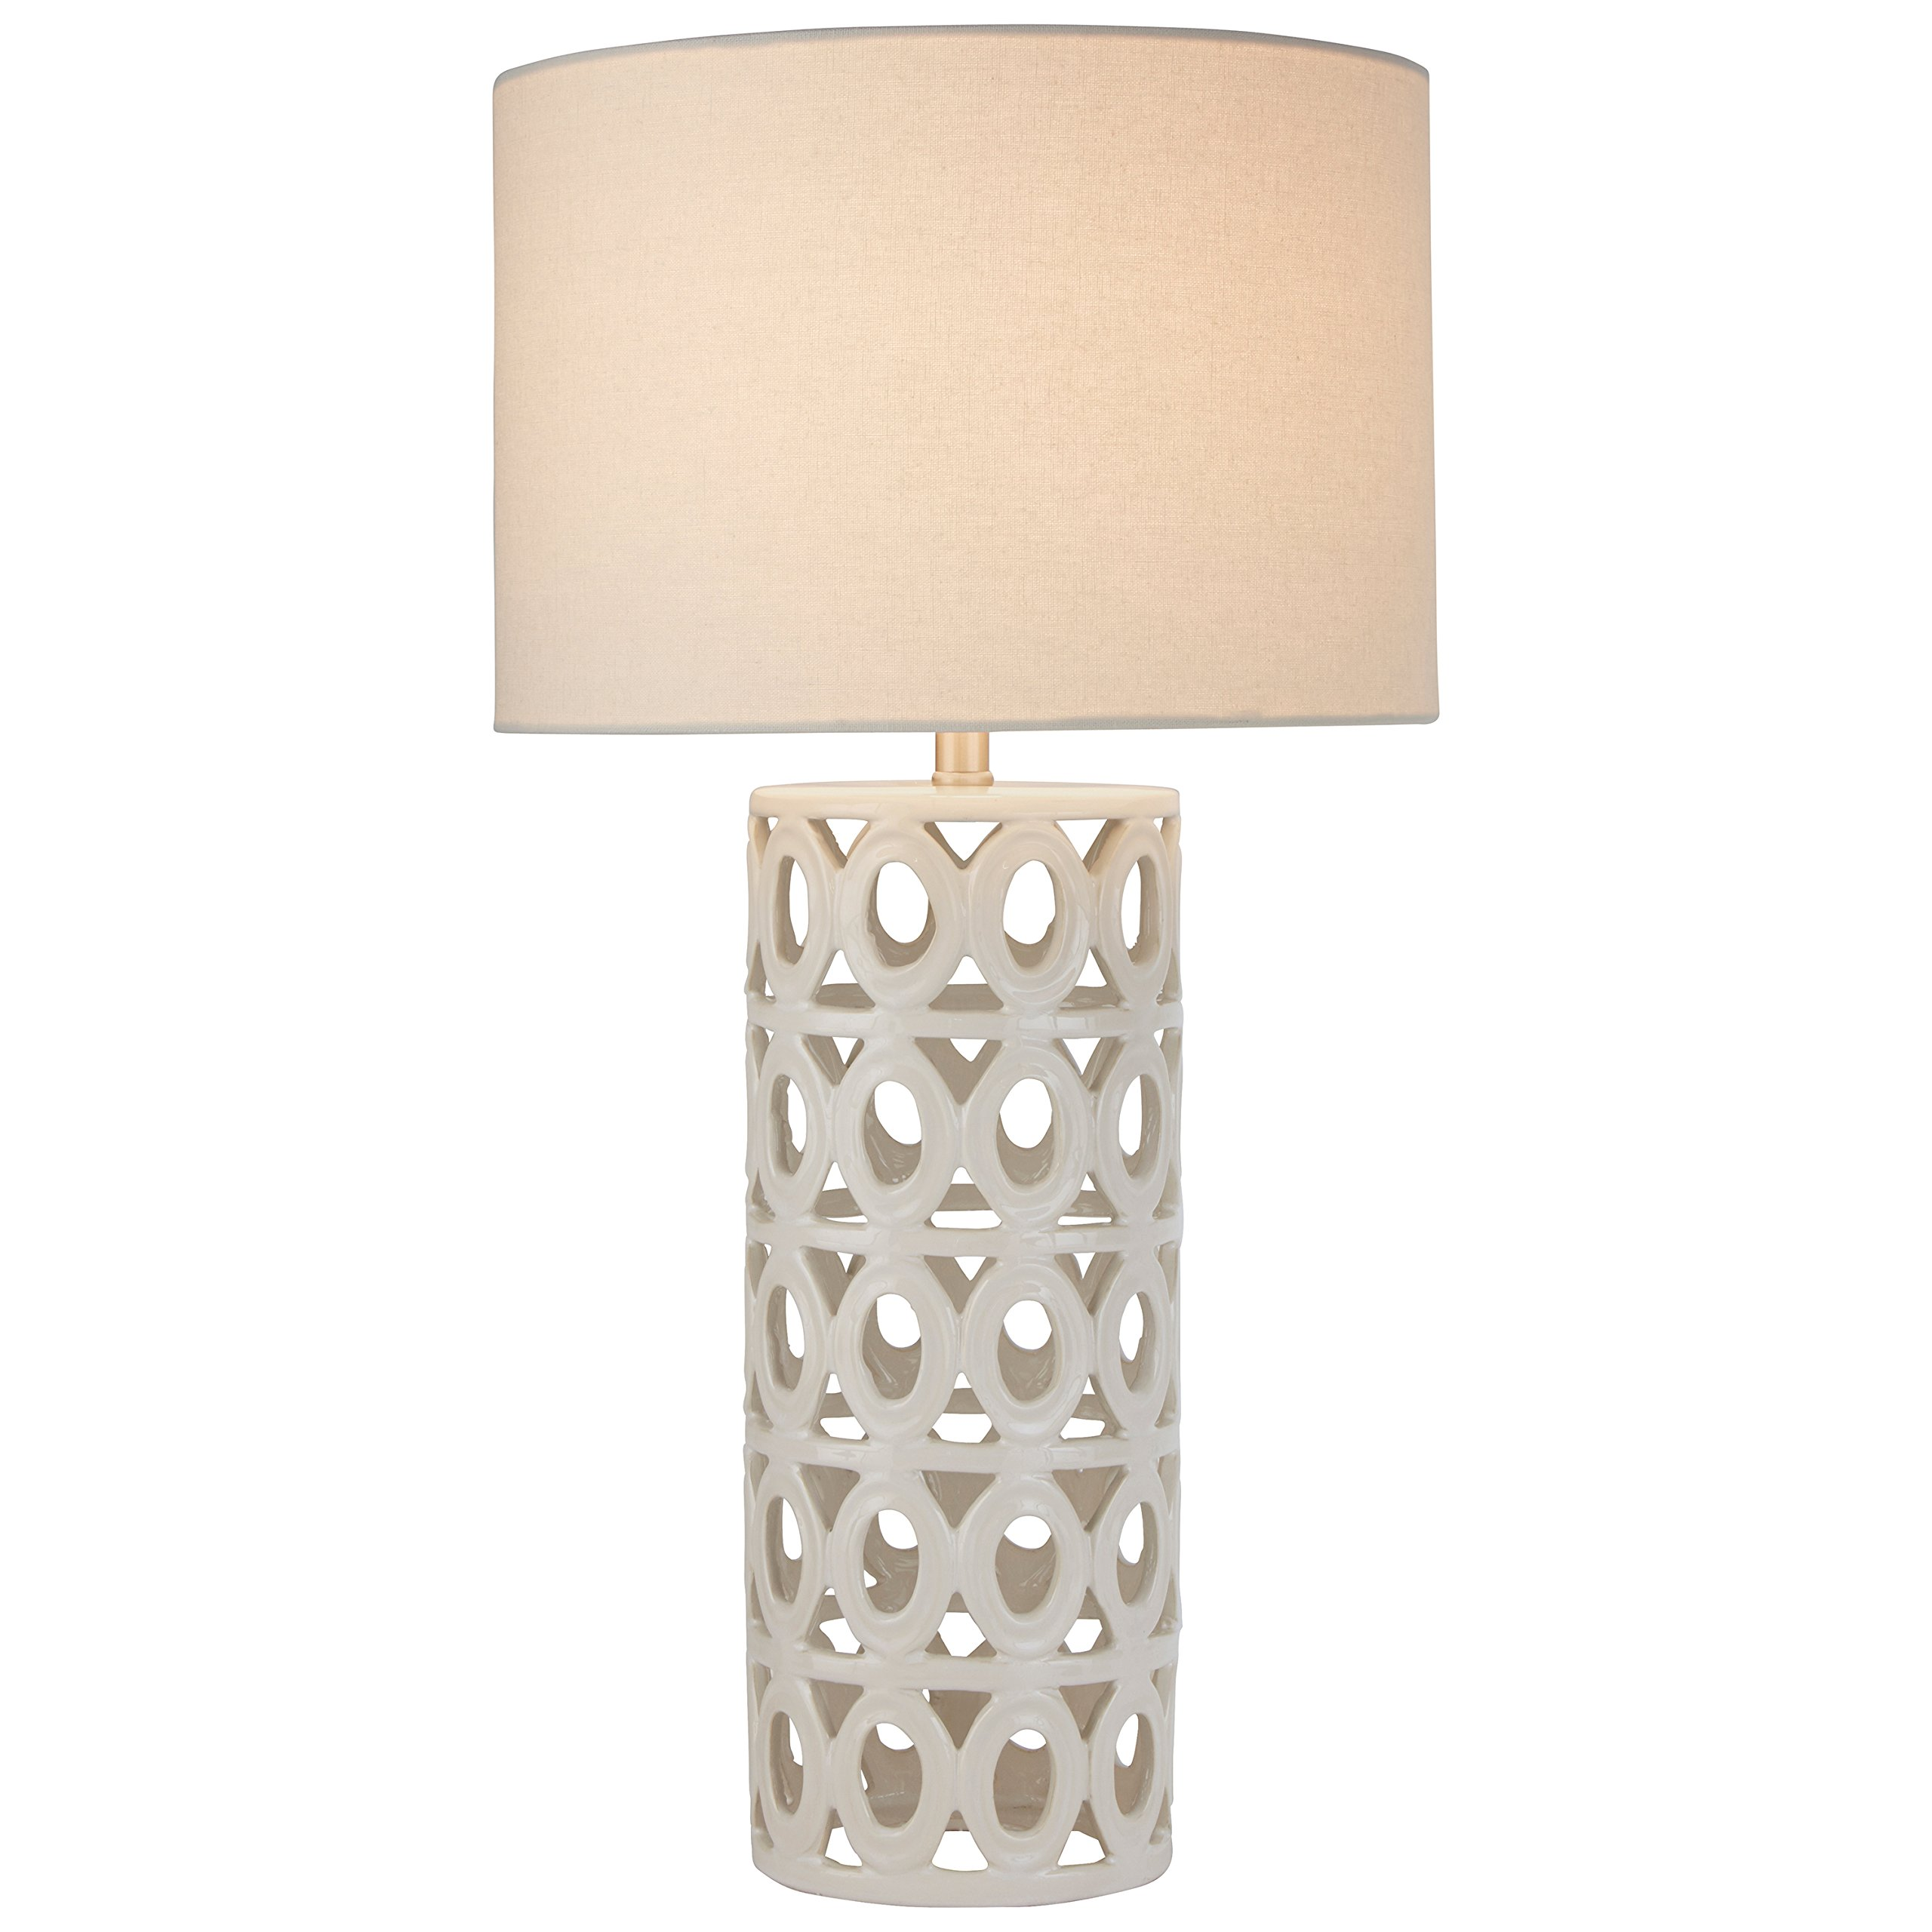 Stone & Beam Ceramic Geometric Table Lamp, 25''H, with Bulb, White Shade